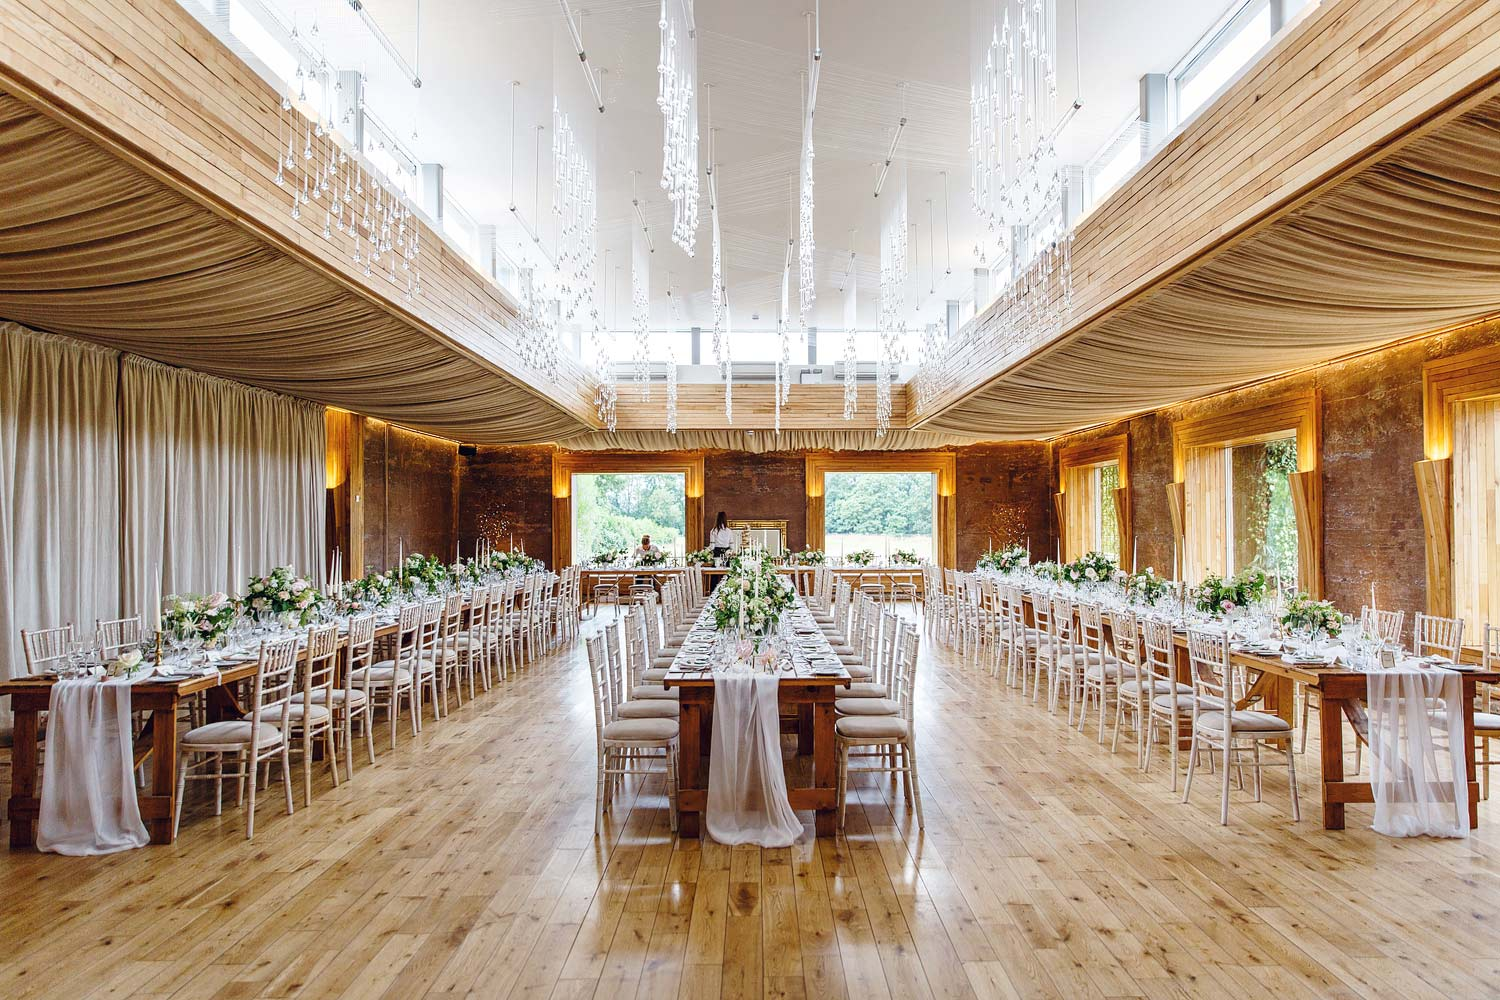 Elmore Court barn set up for a wedding